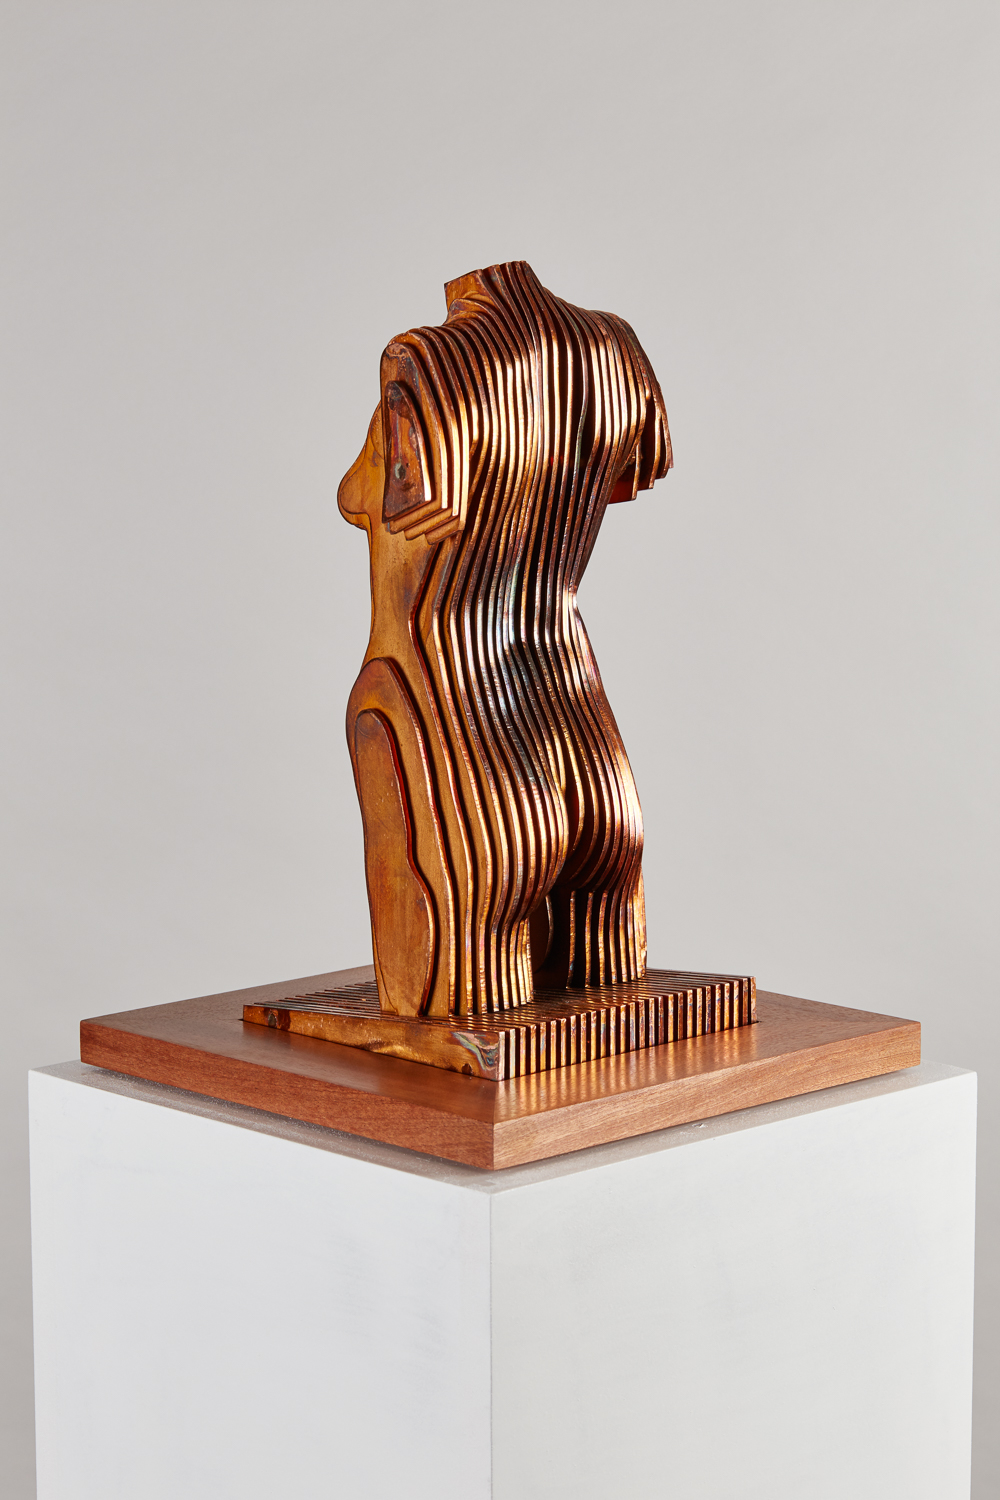 2016 Female Torso V. 35cm x 16cm x 16cm Corten steel; copper plate; Sapele base.jpg